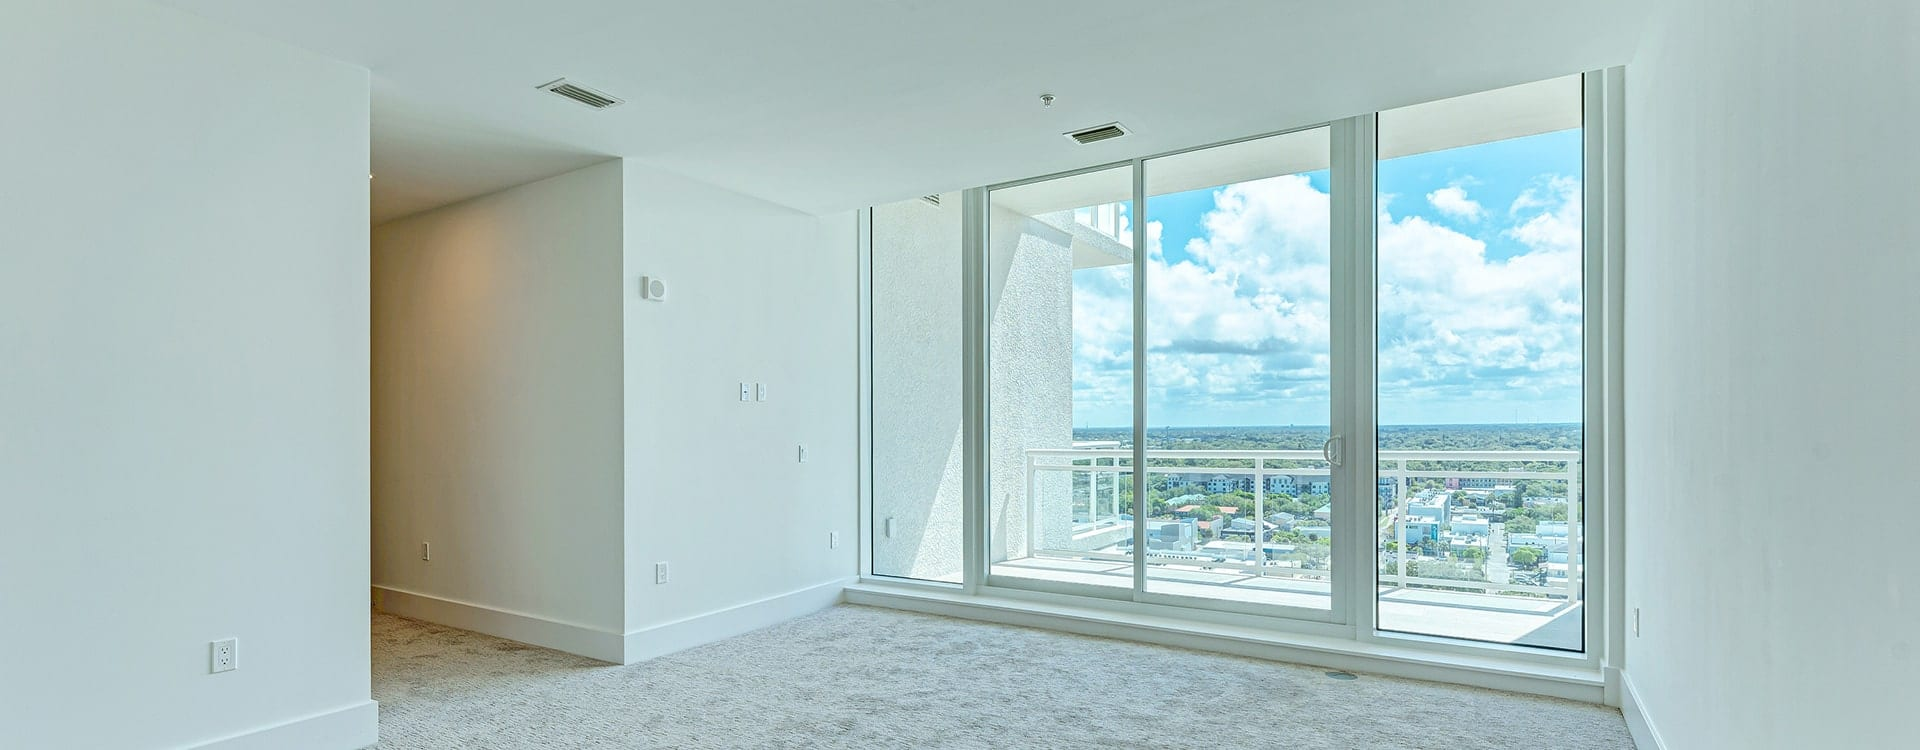 bedroom at BLVD Sarasota Residence 1702 with views